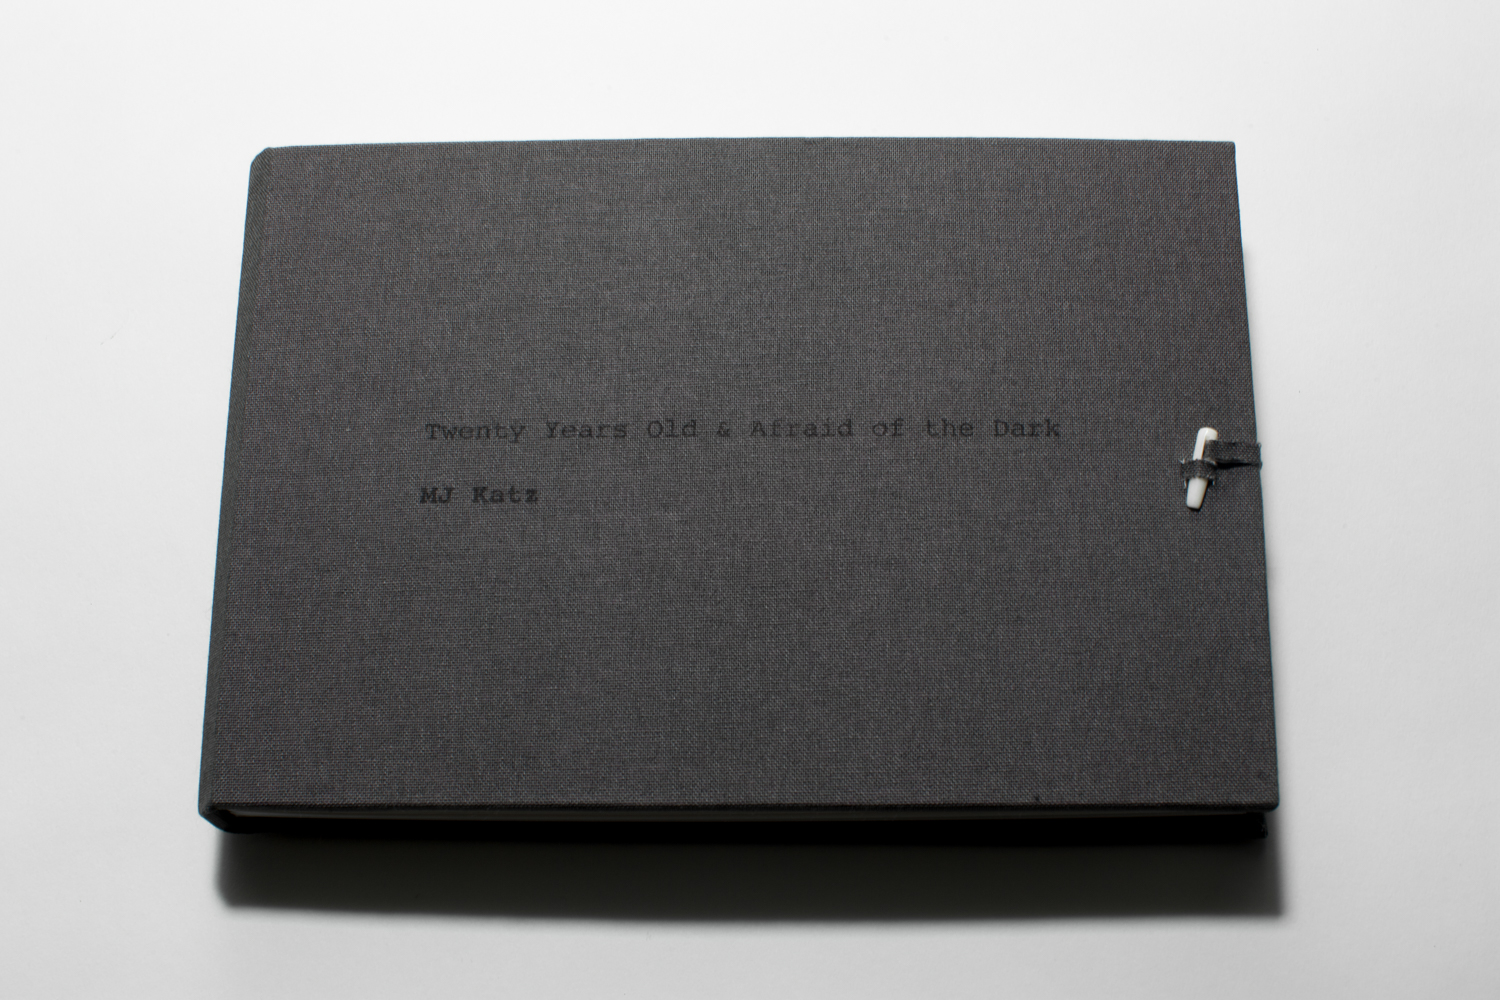 This book was handmade and contains silver gelatin prints of the images above